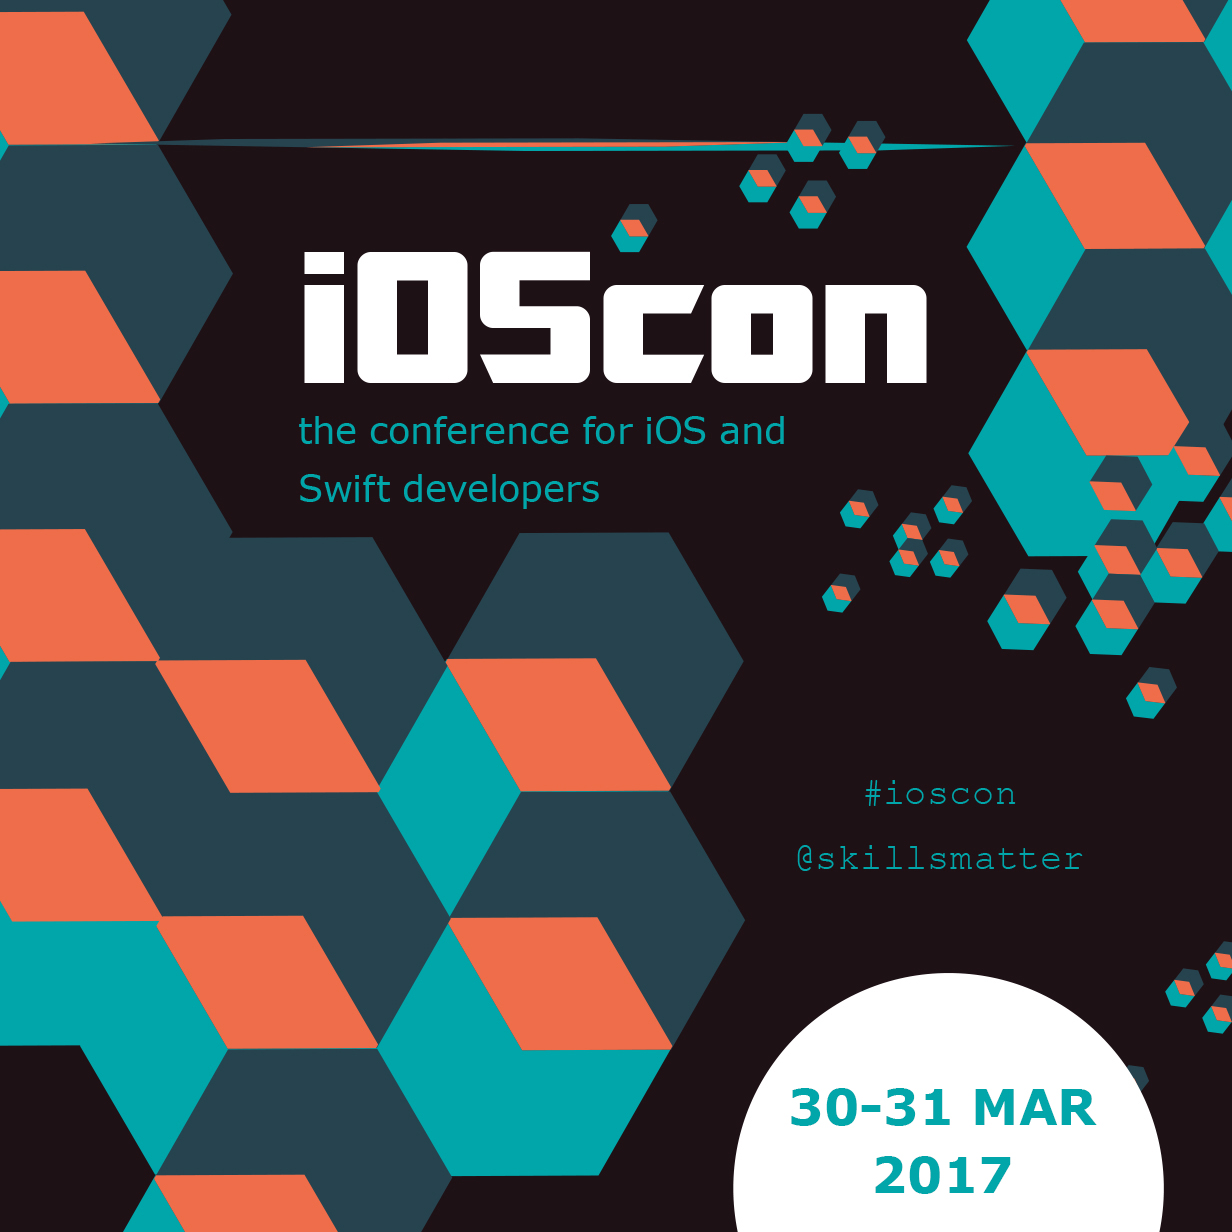 iOSCon 2017 - The conference for iOS and Swift Developers